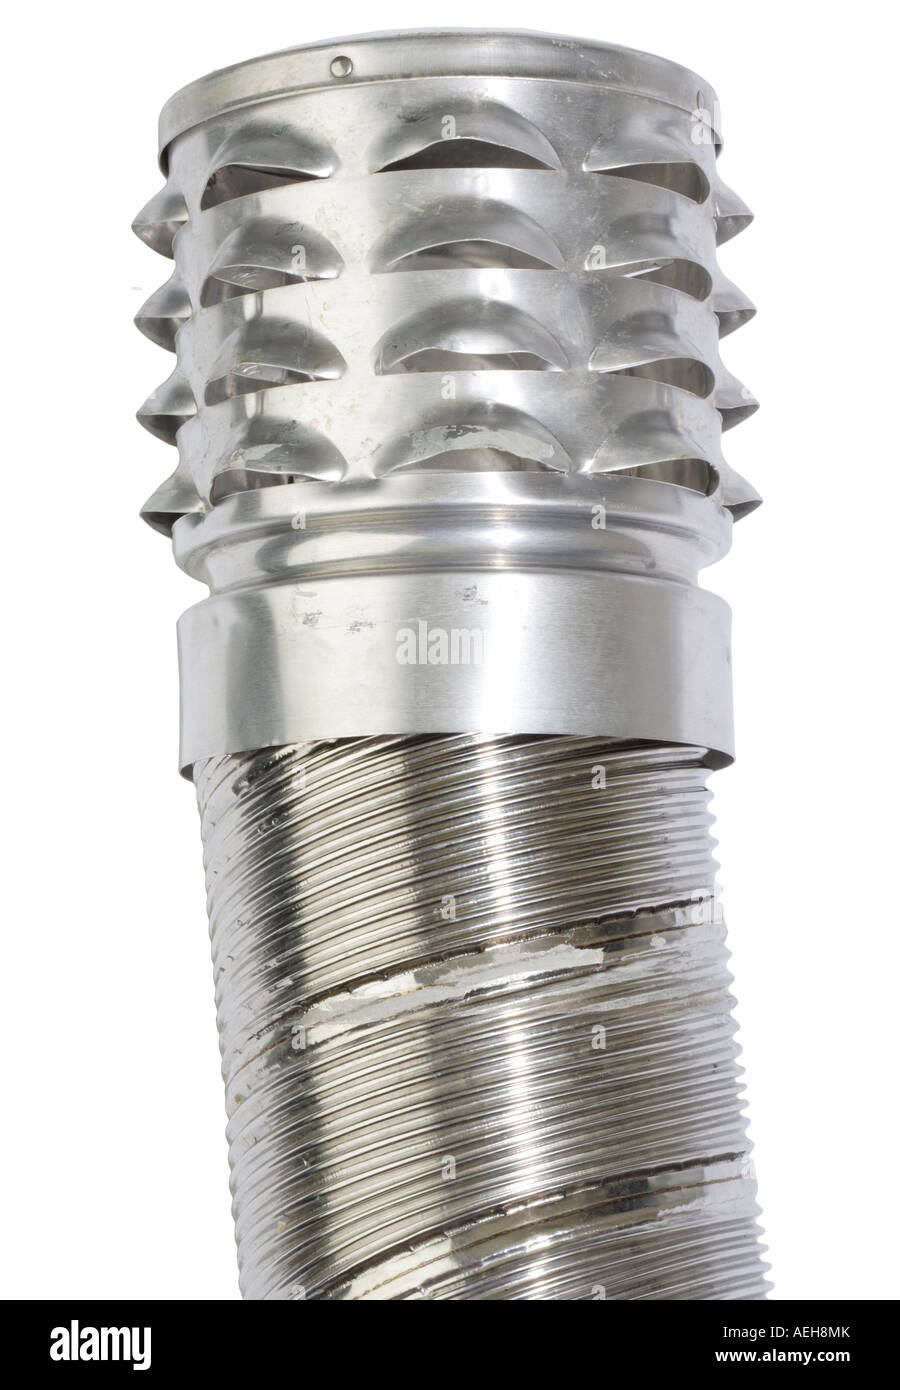 Metal Chimney flue piping with vent at top Stock Photo